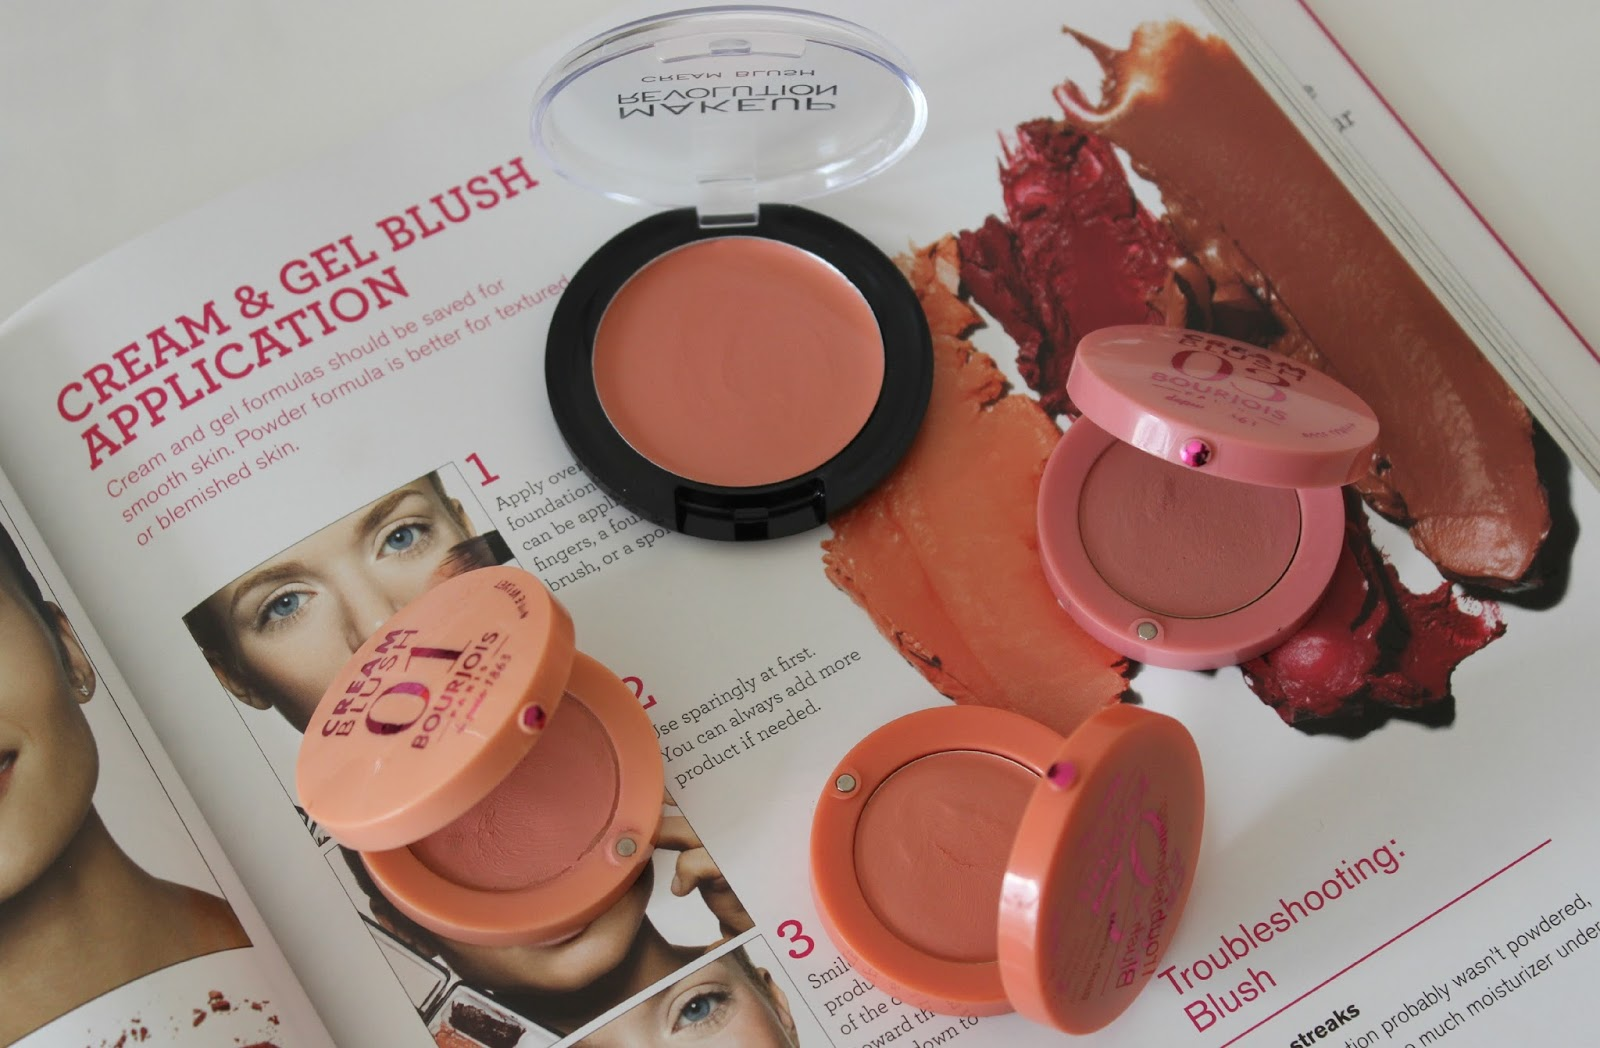 A picture of high-street cream blushes including Bourjois and Makeup Revolution